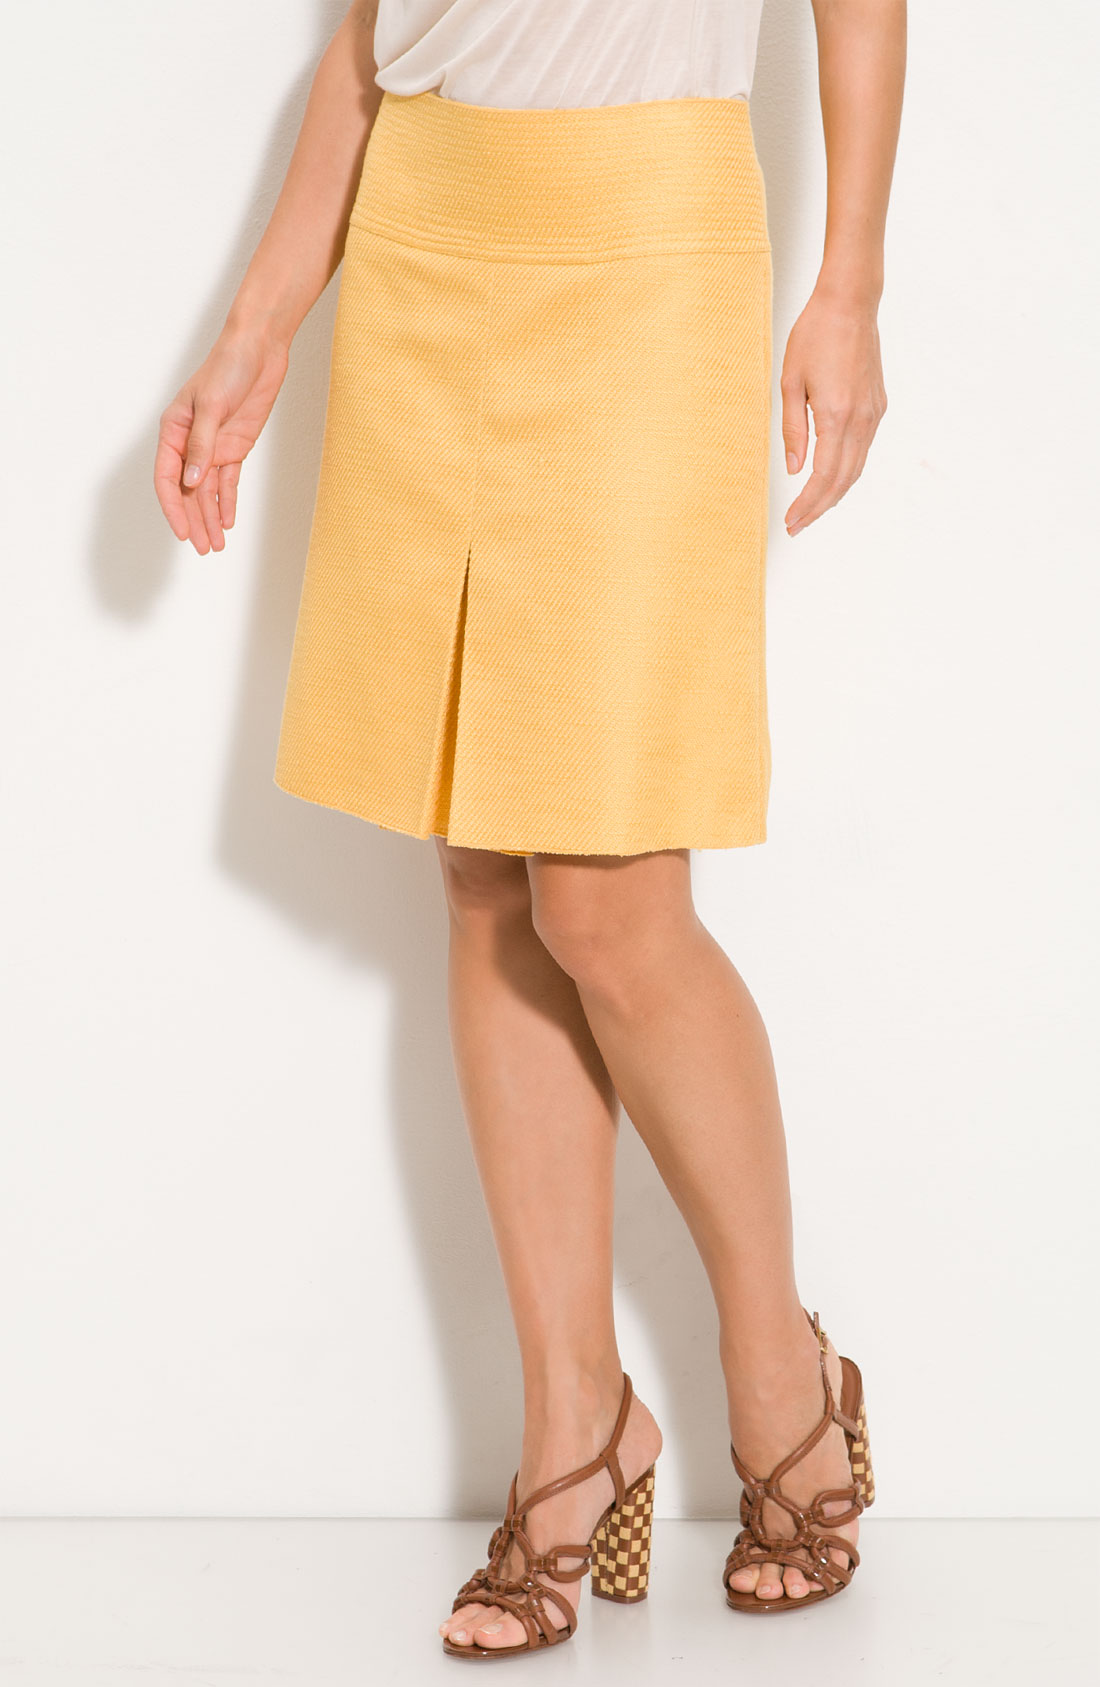 tory-burch-misted-yellow-baelee-skirt-product-2-2554418-912378733